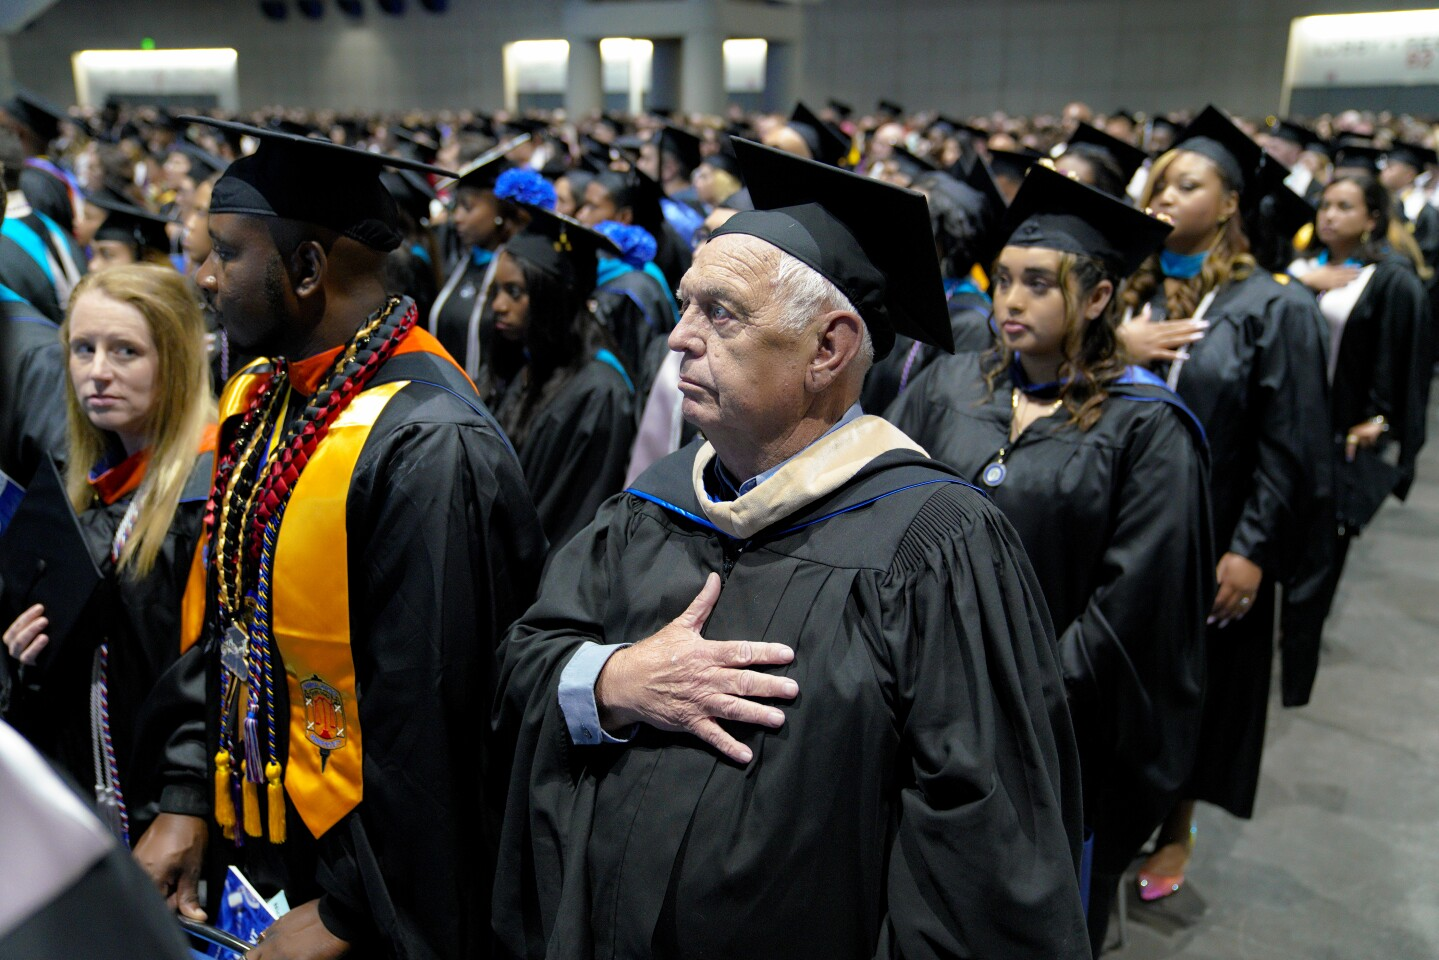 On Sunday at the San Diego Convention Center, George Donelson, 79 gets settled in for the national anthem during his graduation ceremony from National University, where he earned his Masters in criminal justice on June 30, 2019.